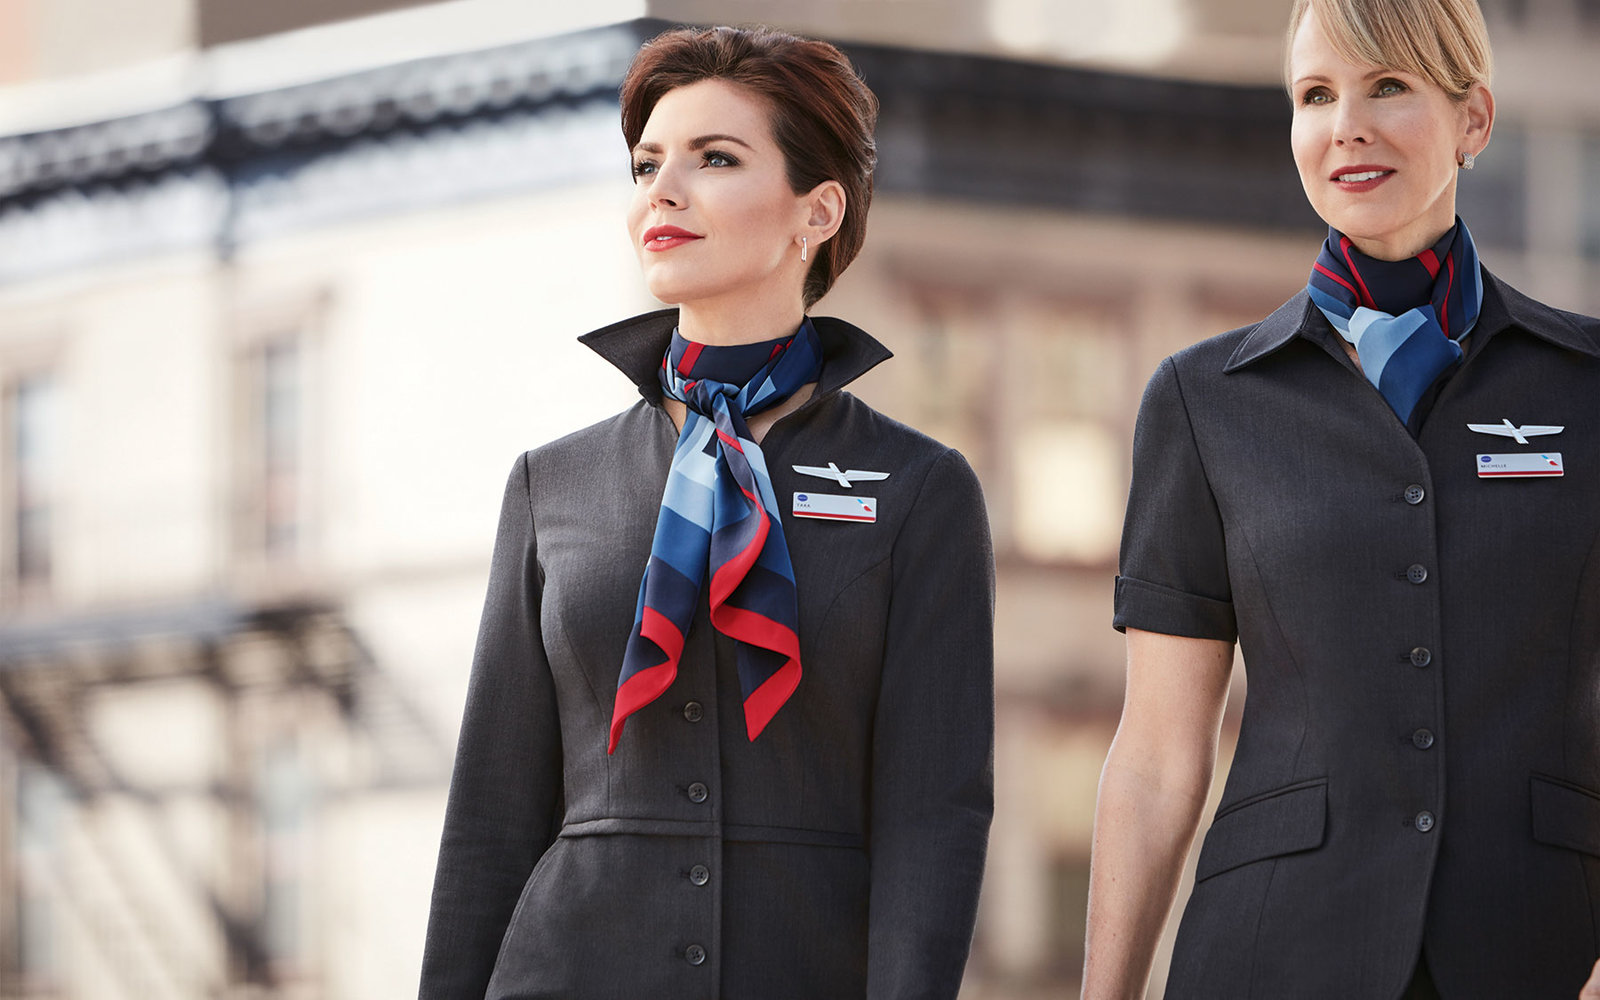 American airlines flight attendant uniforms photo